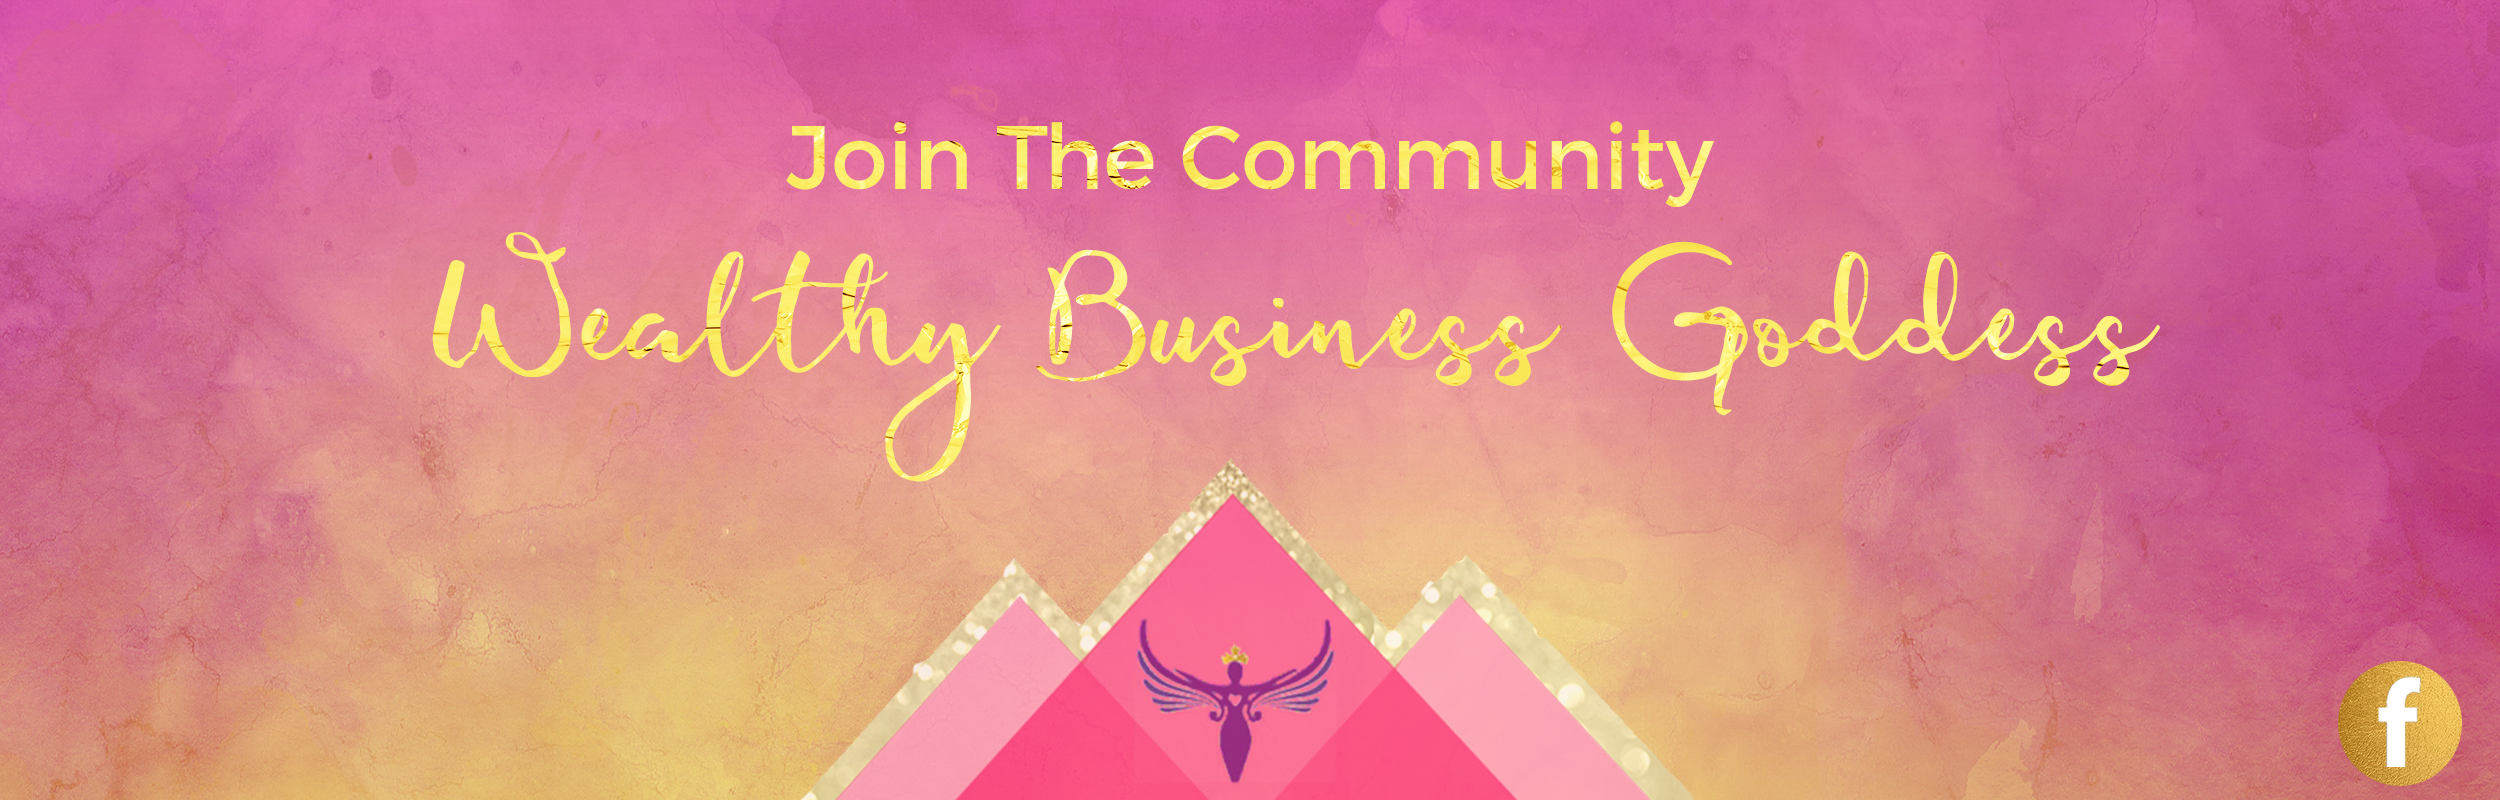 Join the wealthy business goddess community